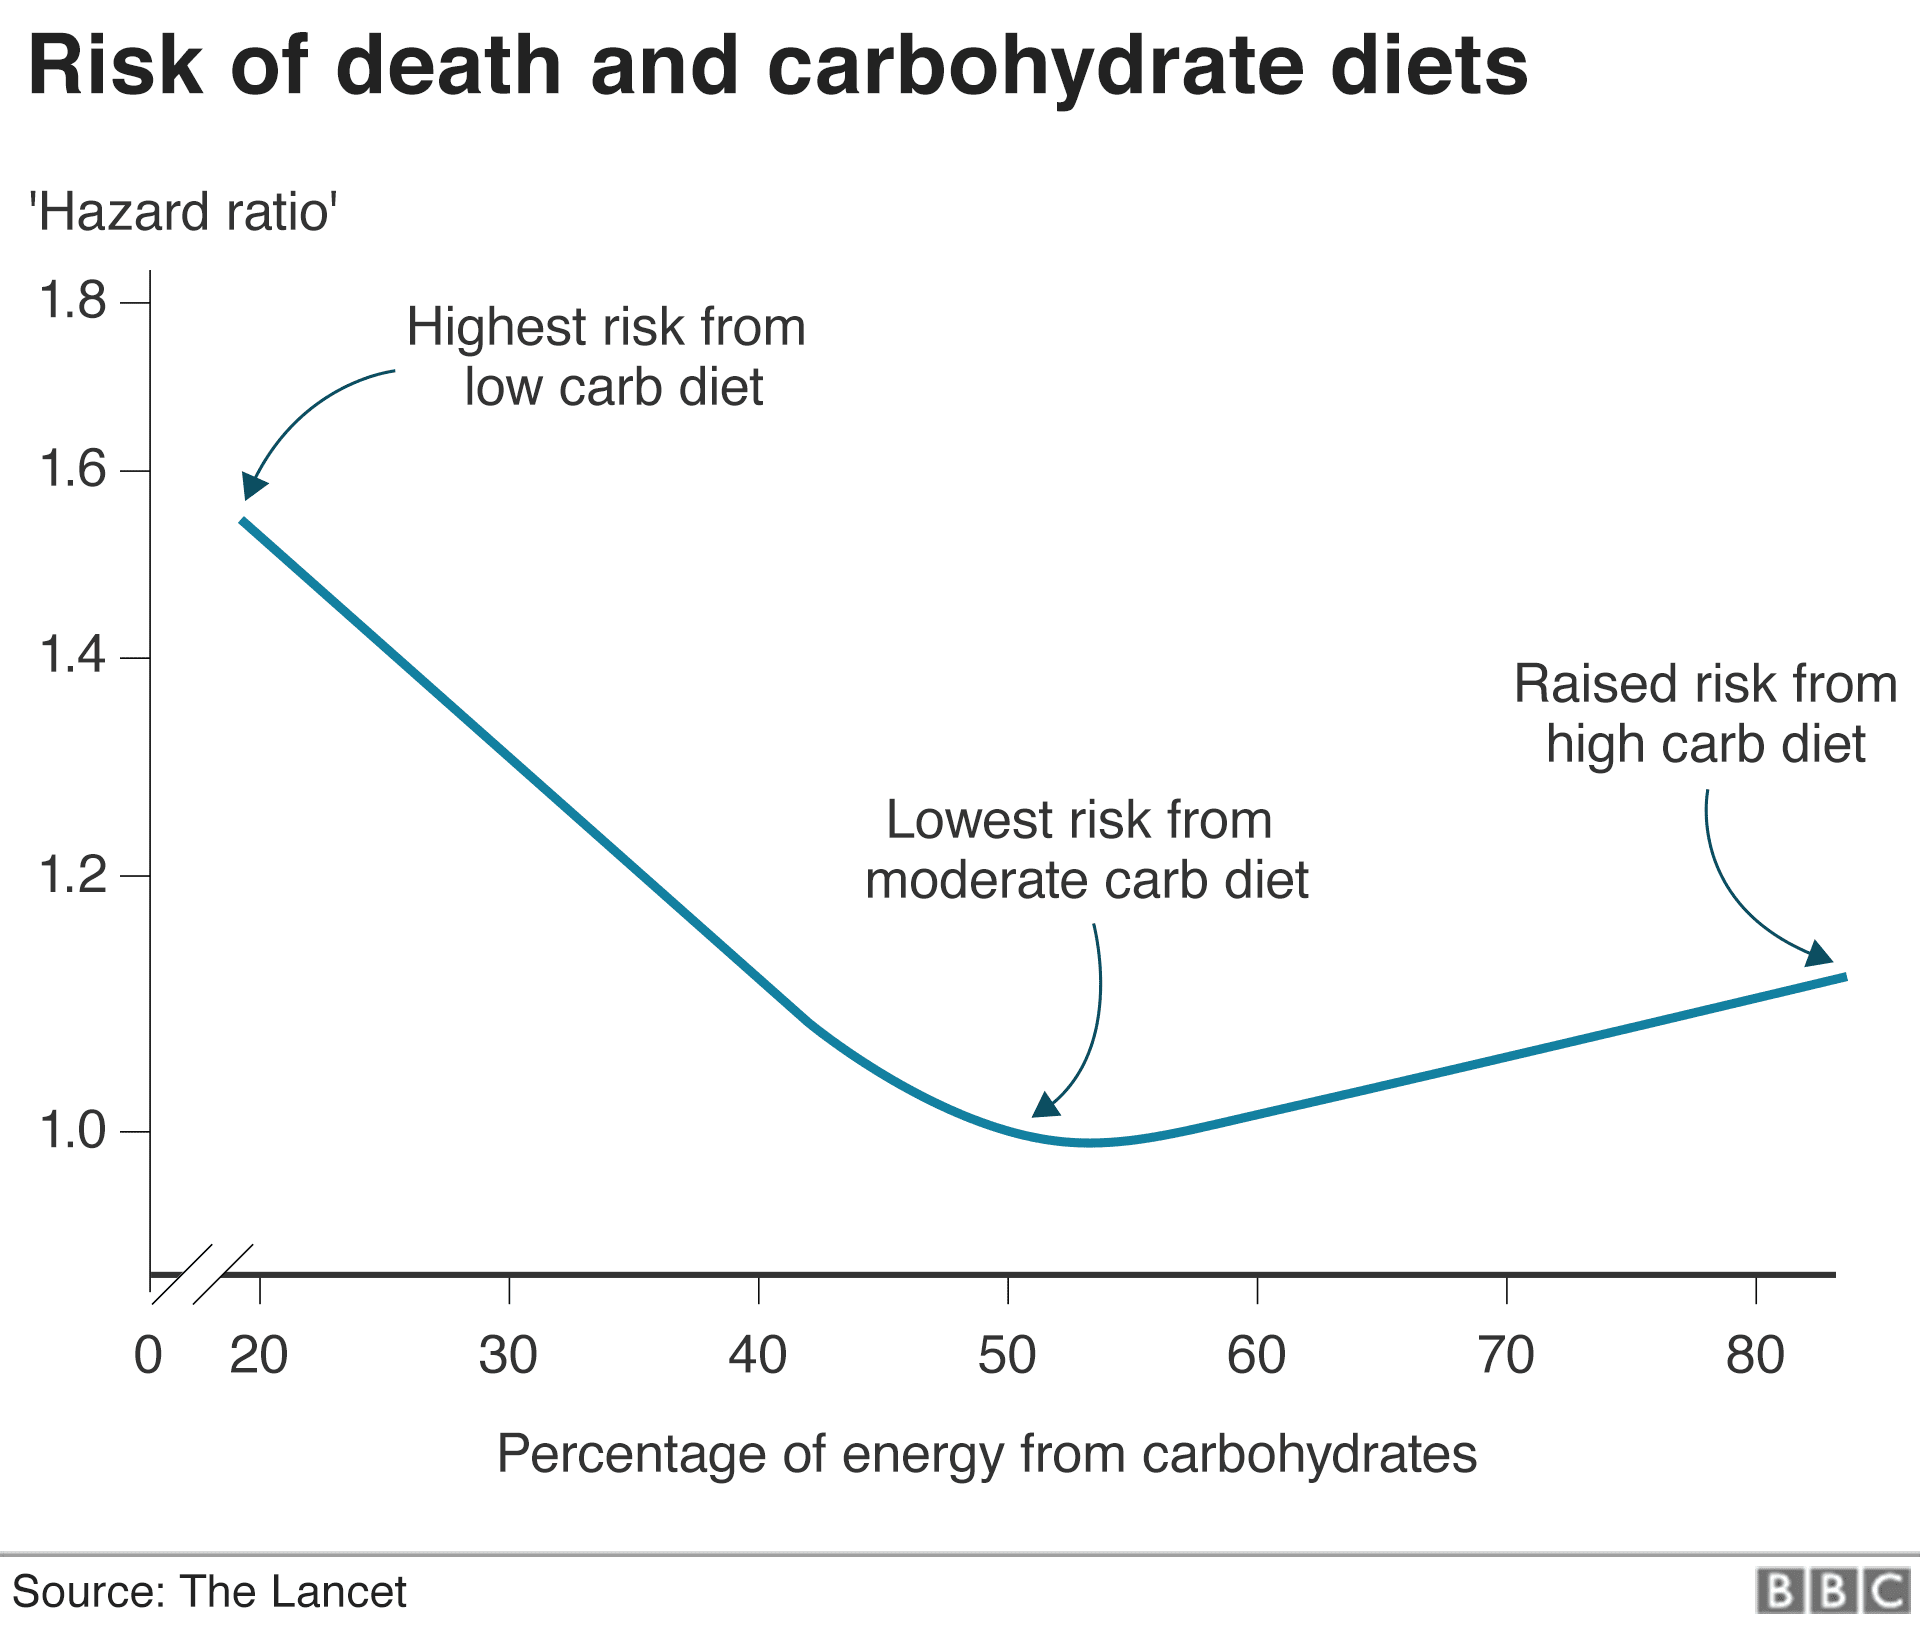 Graph showing risk of death and carbohydrate diets